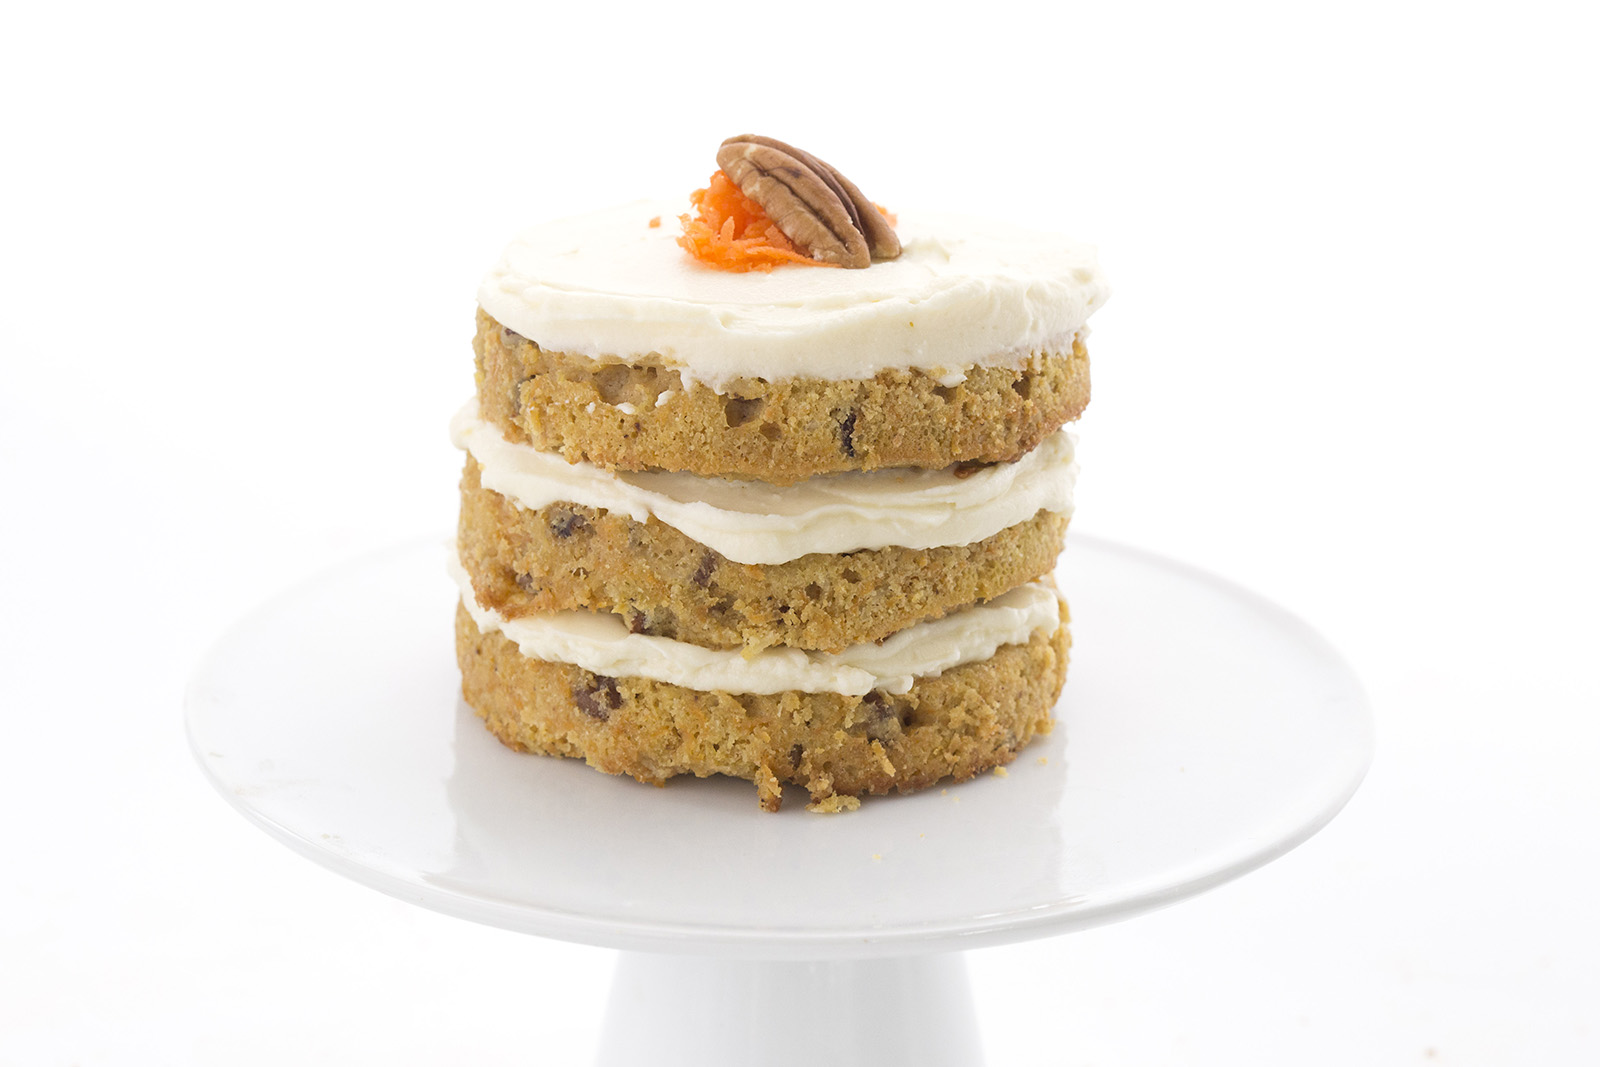 Mini Carrot Cake Recipes Swerve Sweetener